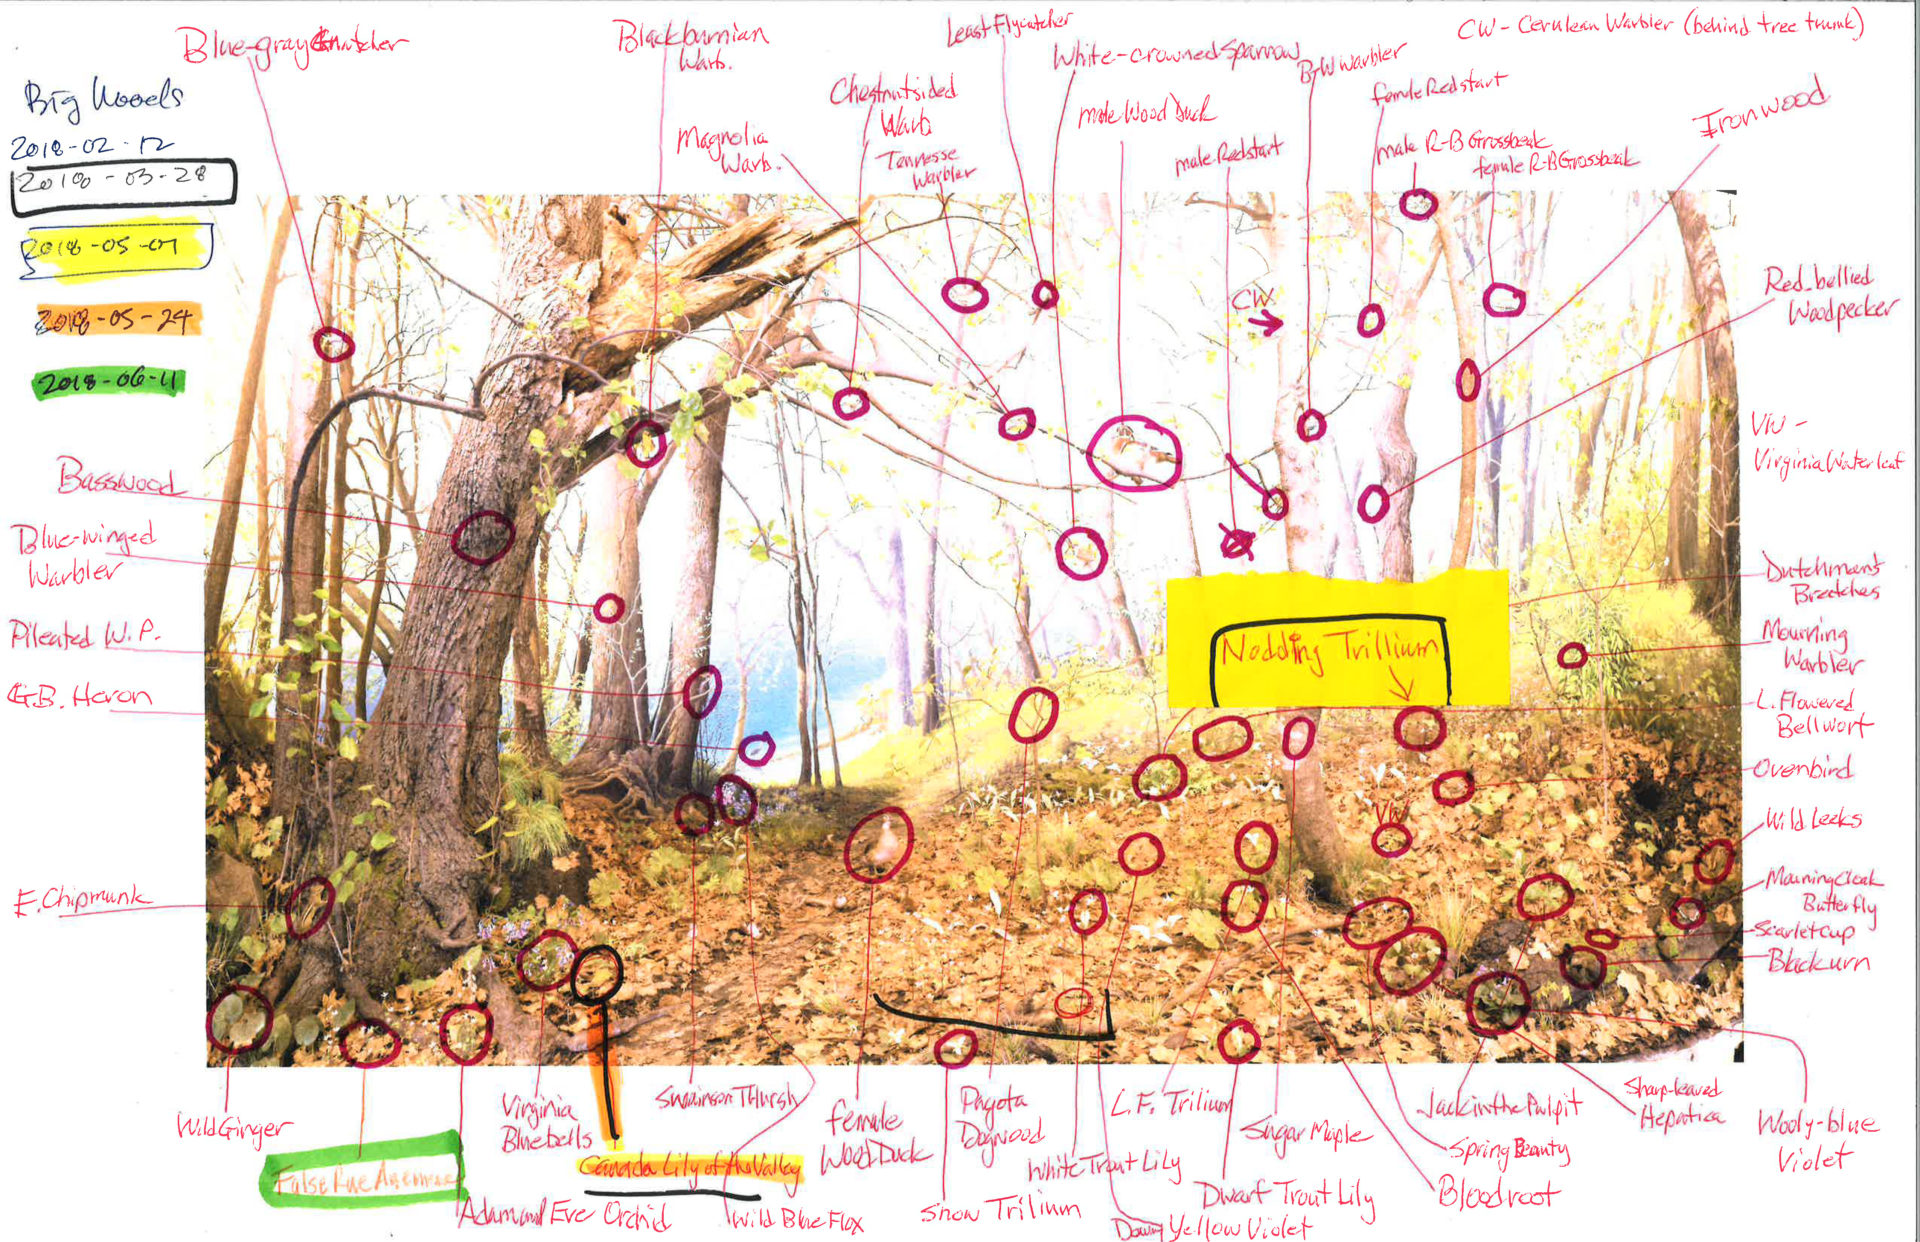 a diagram indicating where various flora and fauna of the big woods diorama should go